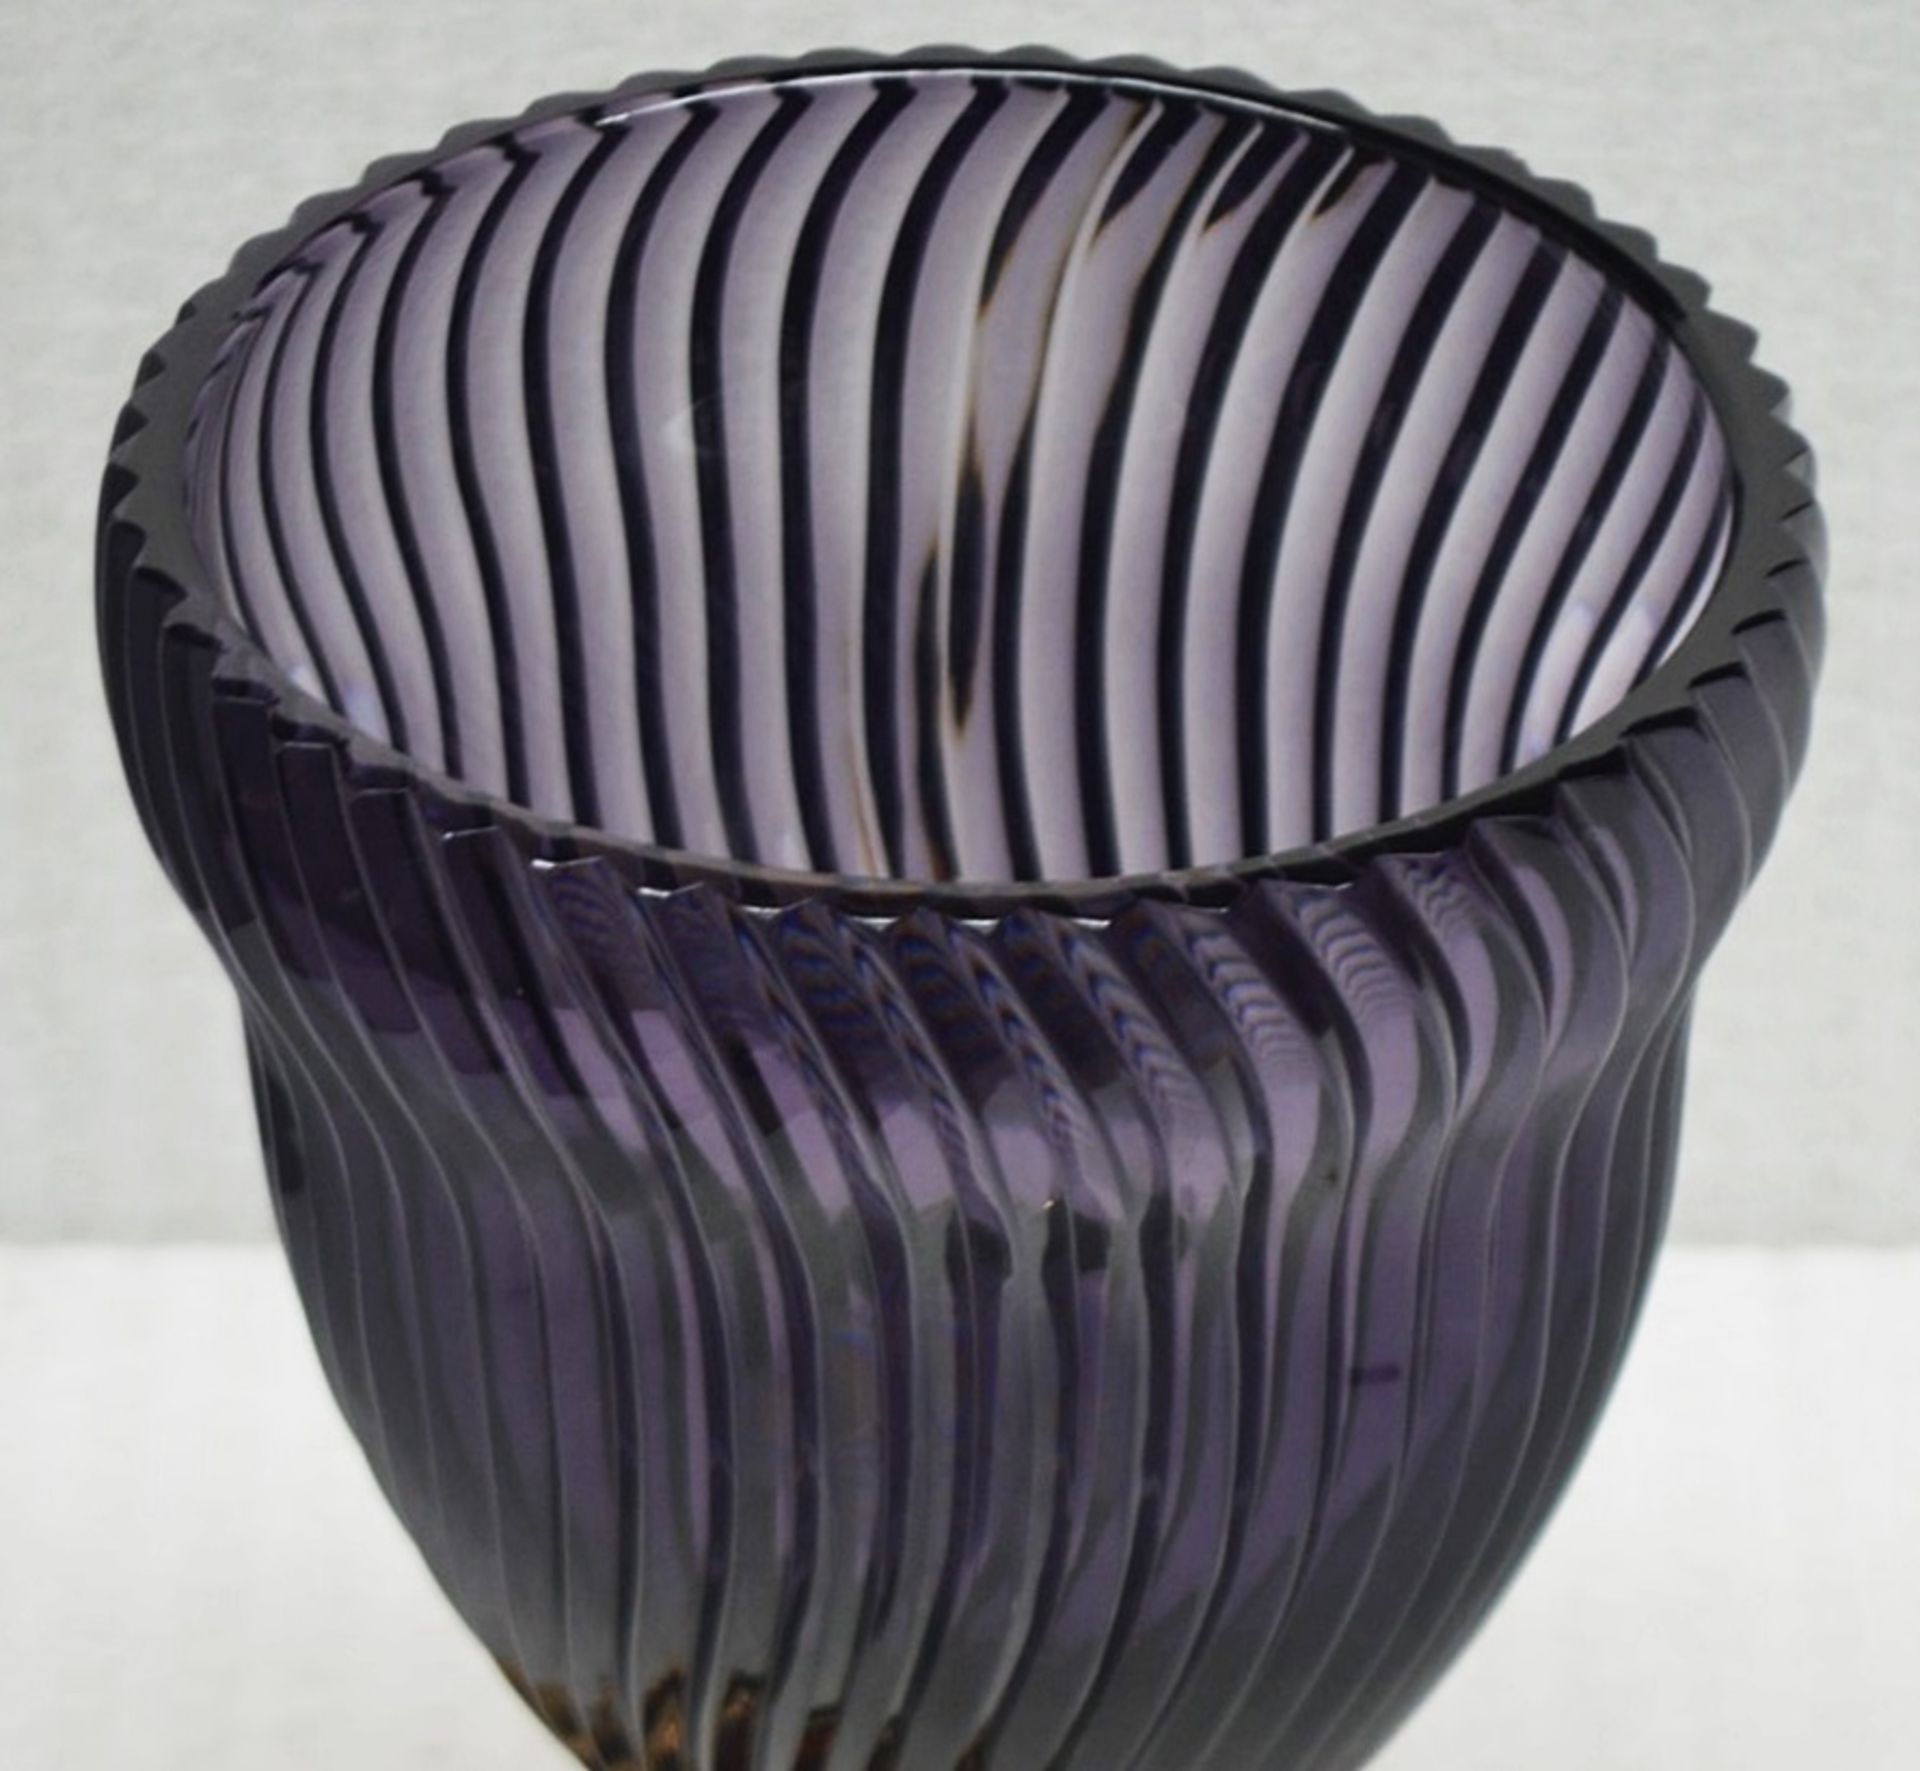 1 x BALDI 'Home Jewels' Italian Hand-crafted Artisan GHIAHDA VASE In Violet Crystal - RRP £1,925 - Image 5 of 5